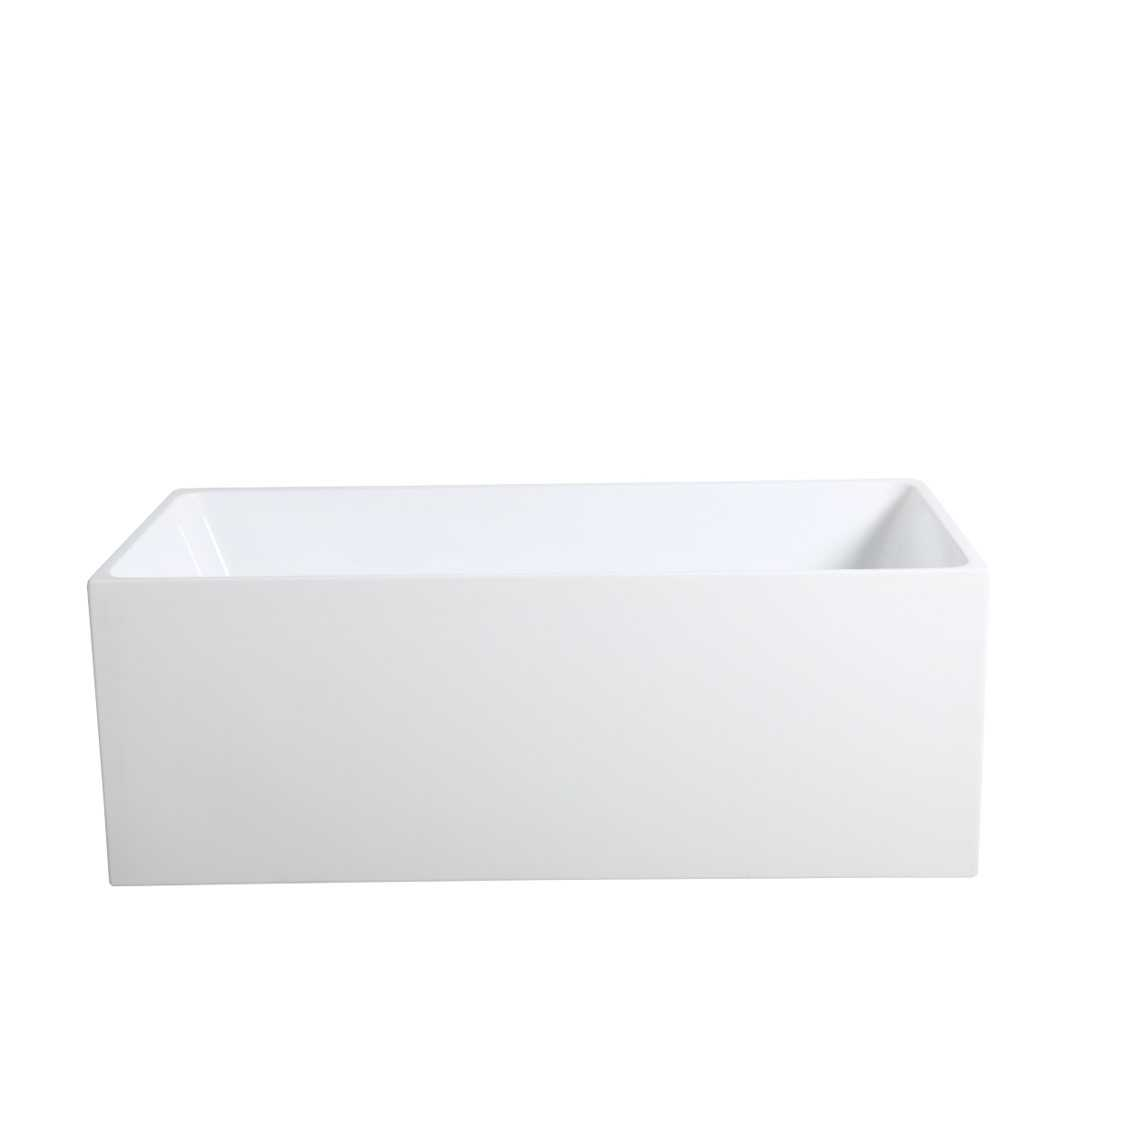 THEO 1300mm Multi Fit Bathtub